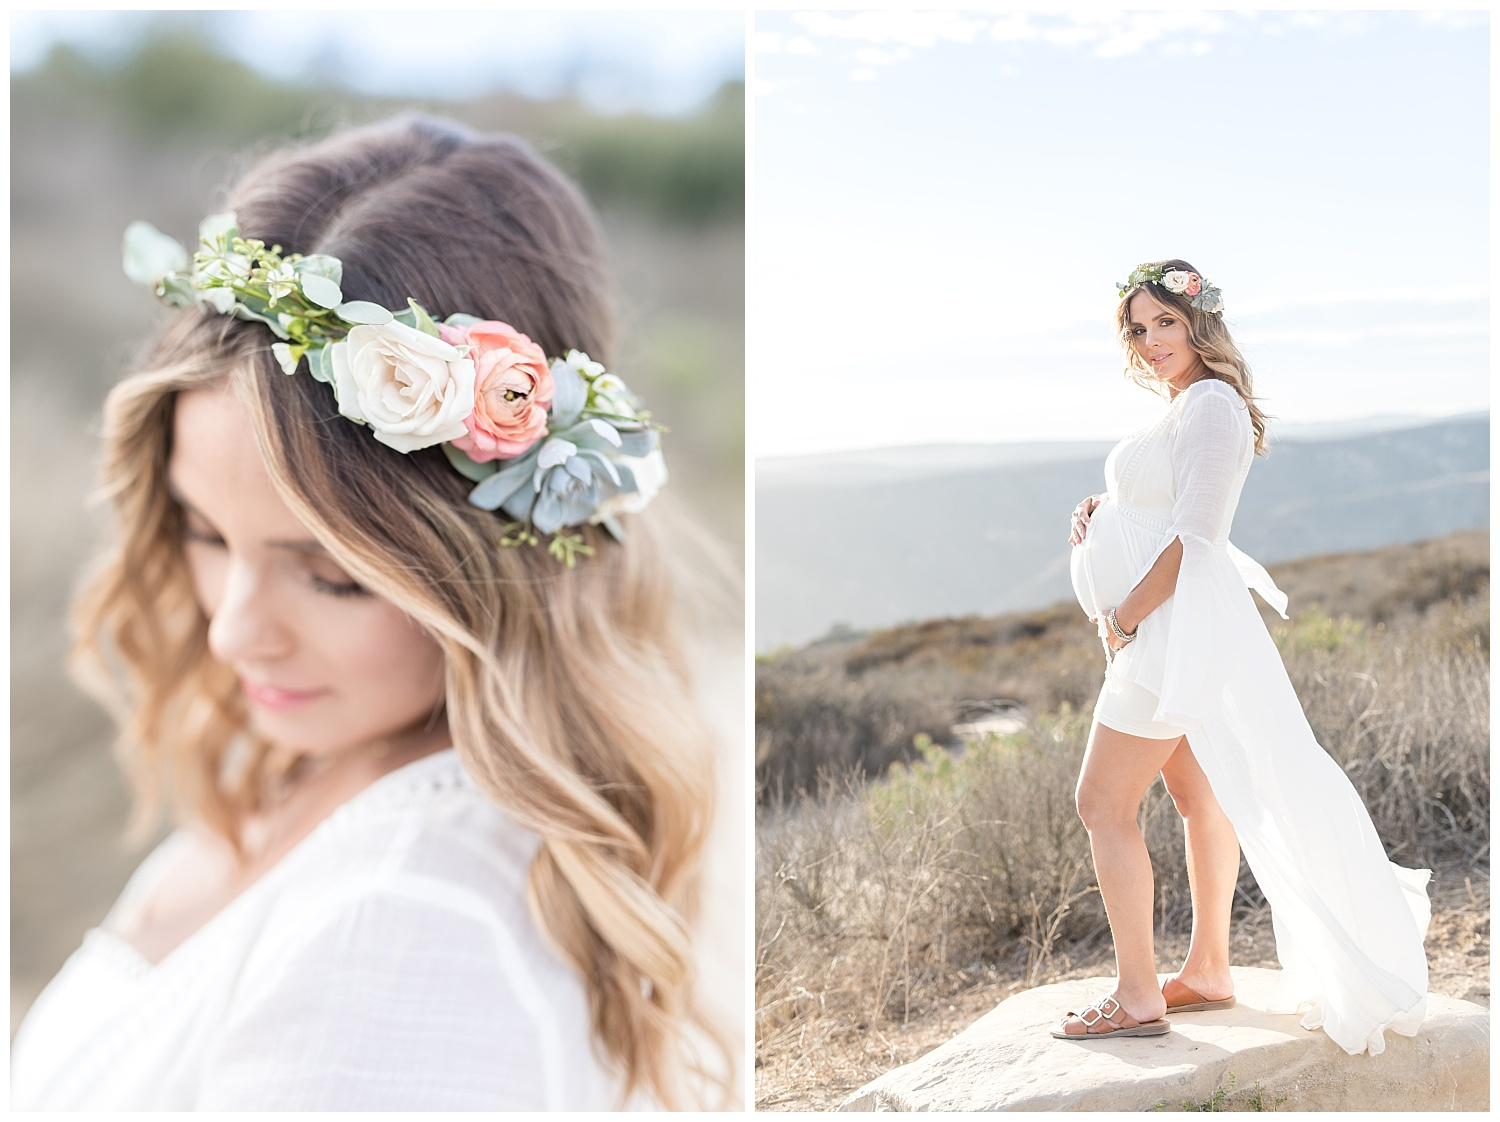 ashley - laguna beach, orange county hiking trail - maternity-0005